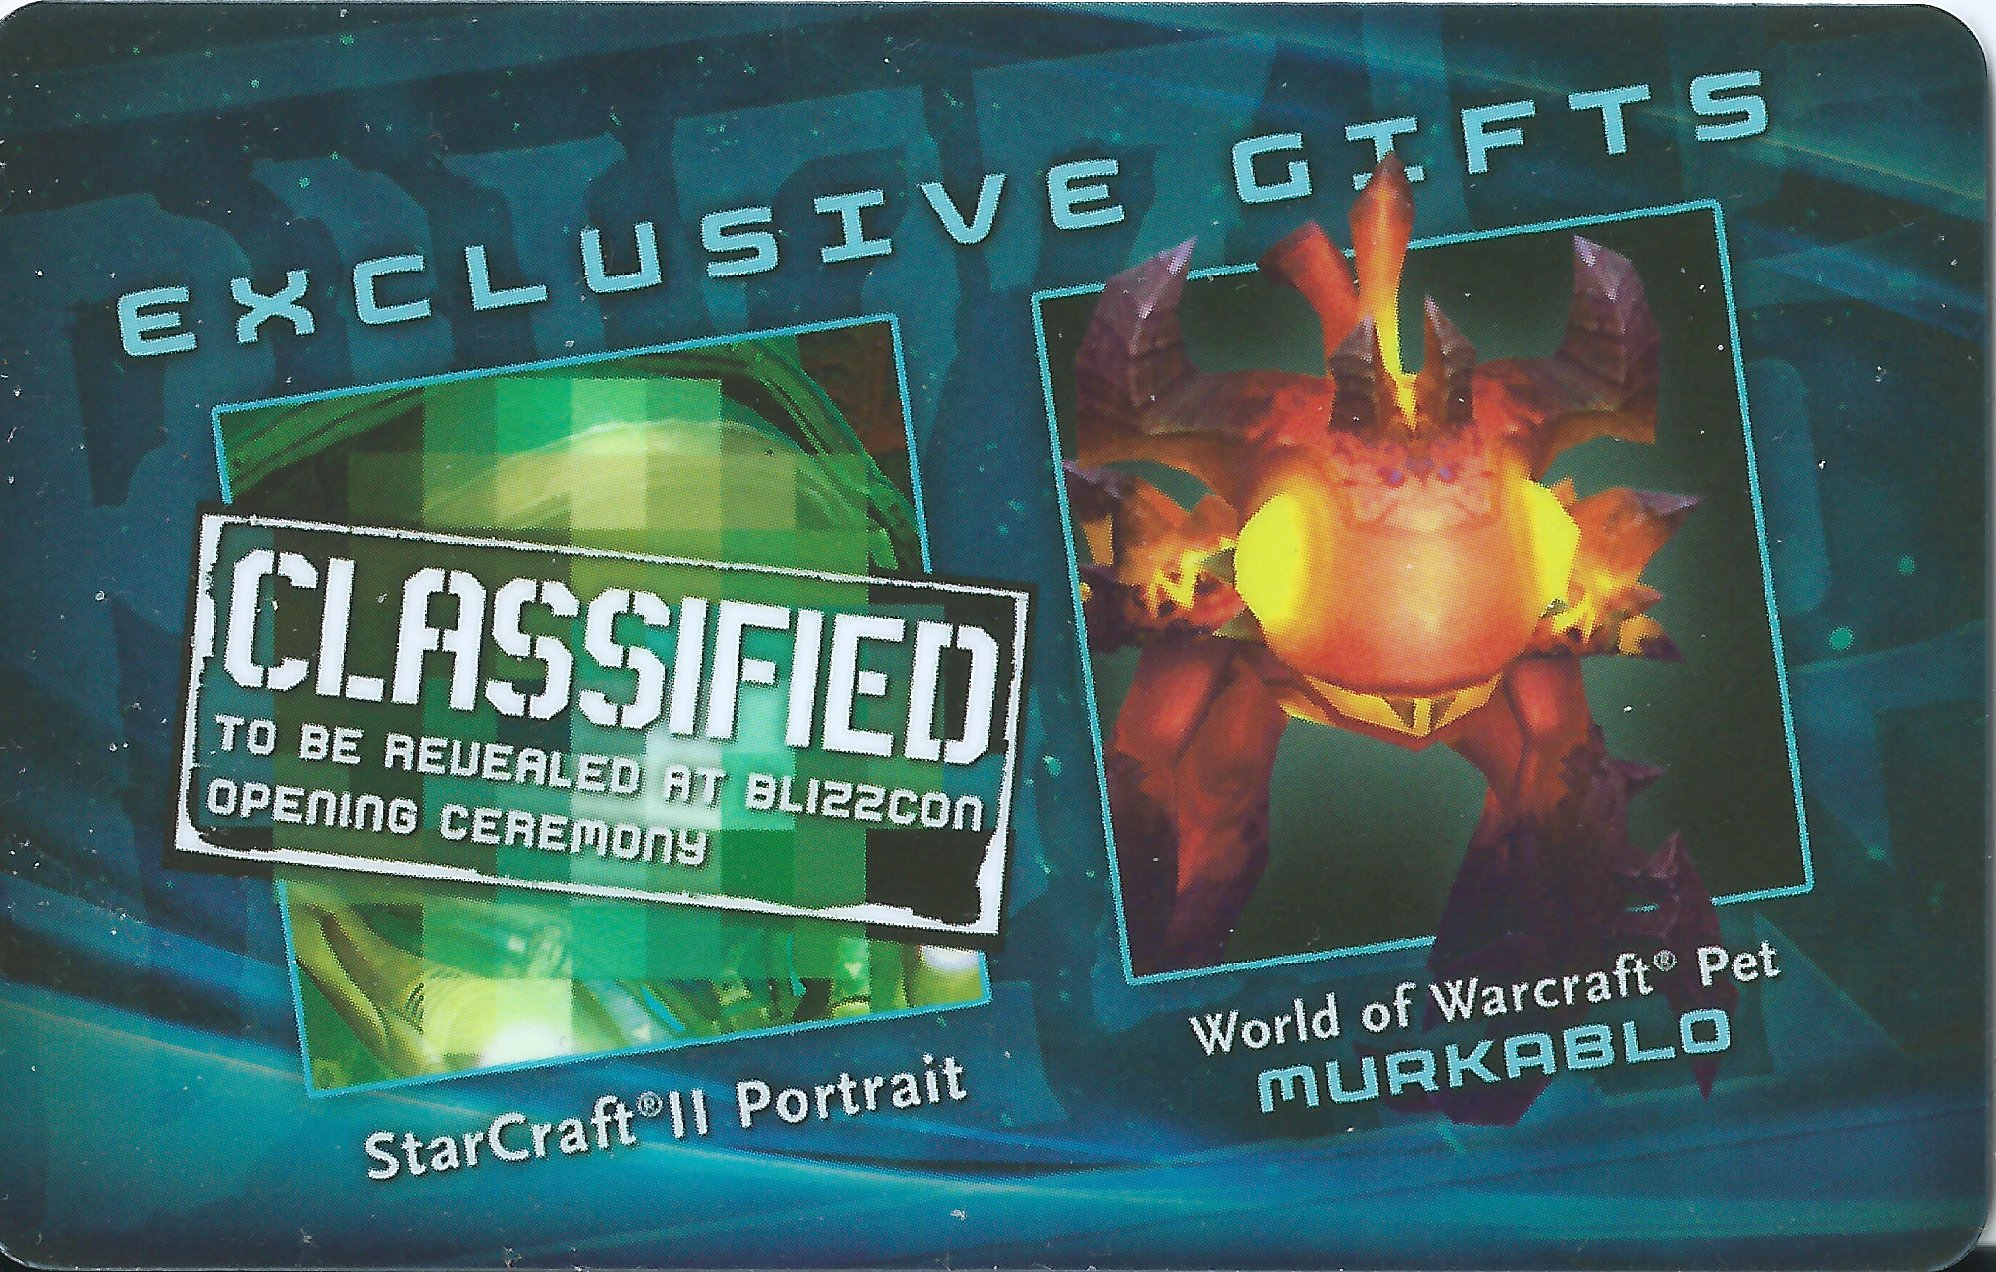 Blizzcon 2011 exclusive Murkablo pet World Warcraft wow + SC2 portrait loot card by Warcraft